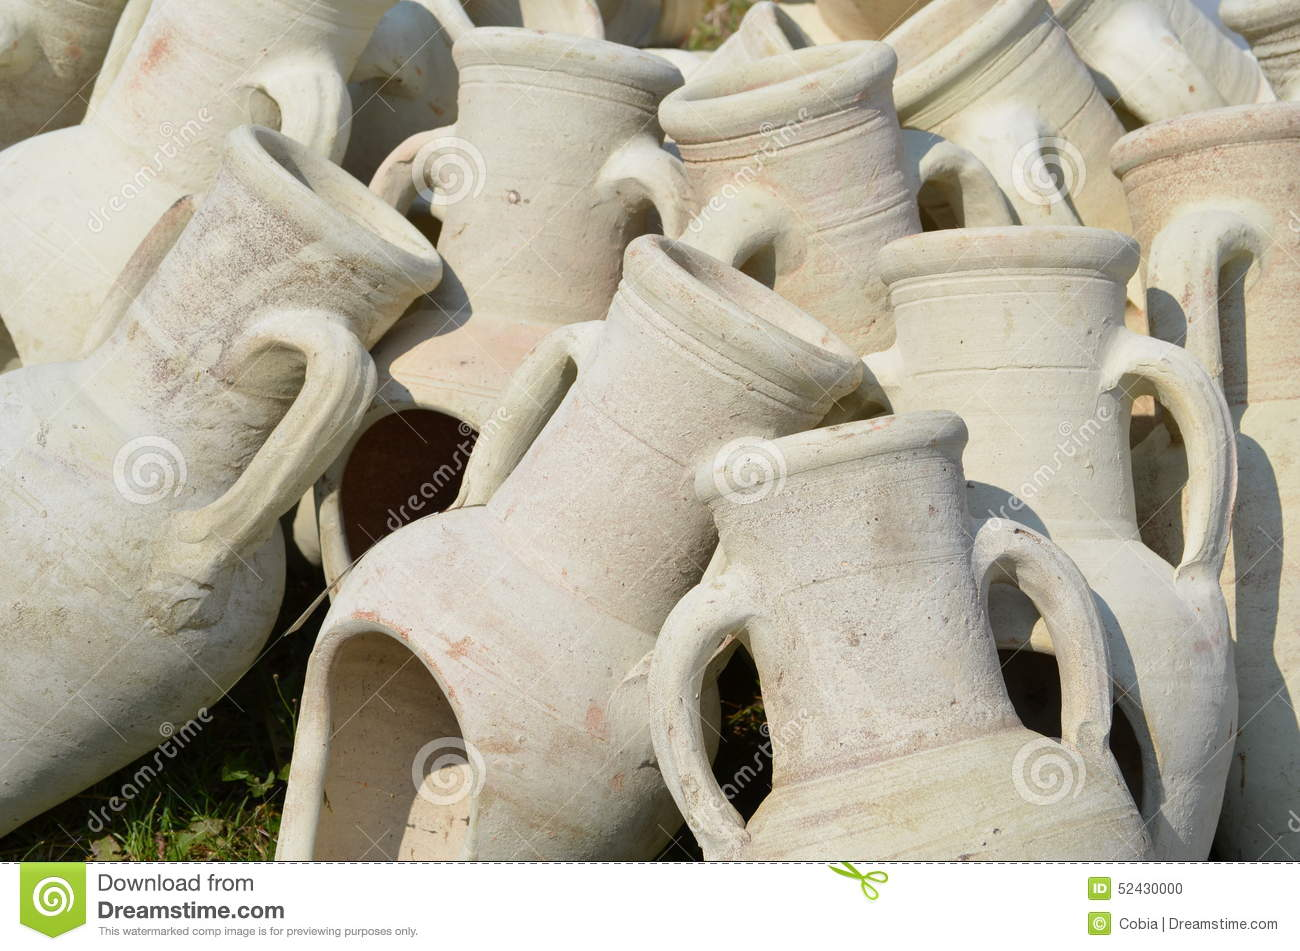 Amphores comme poterie de jardin photo stock image 52430000 for Amphore de jardin